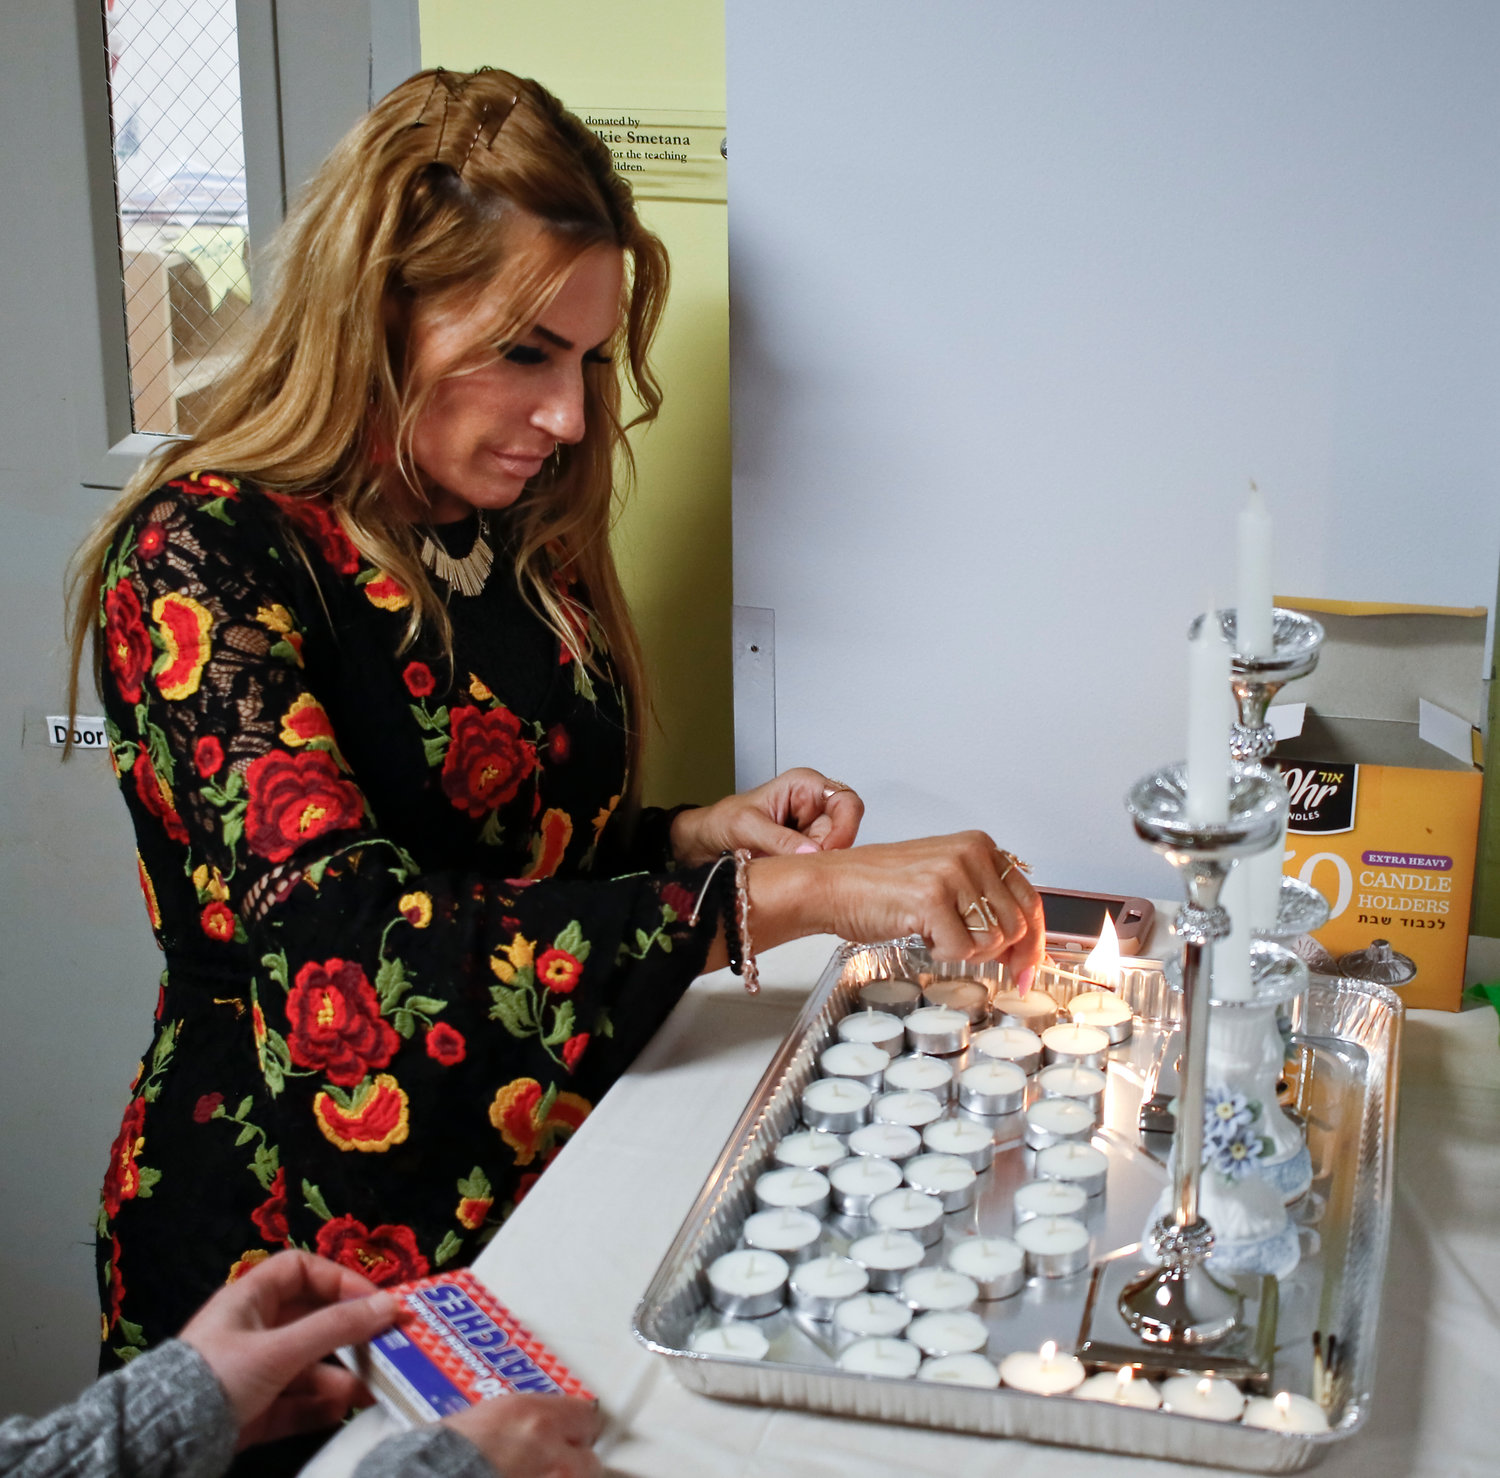 Stacy Feldbrandt lit a candle at the Friday night Shabbat candle-lighting ceremony.